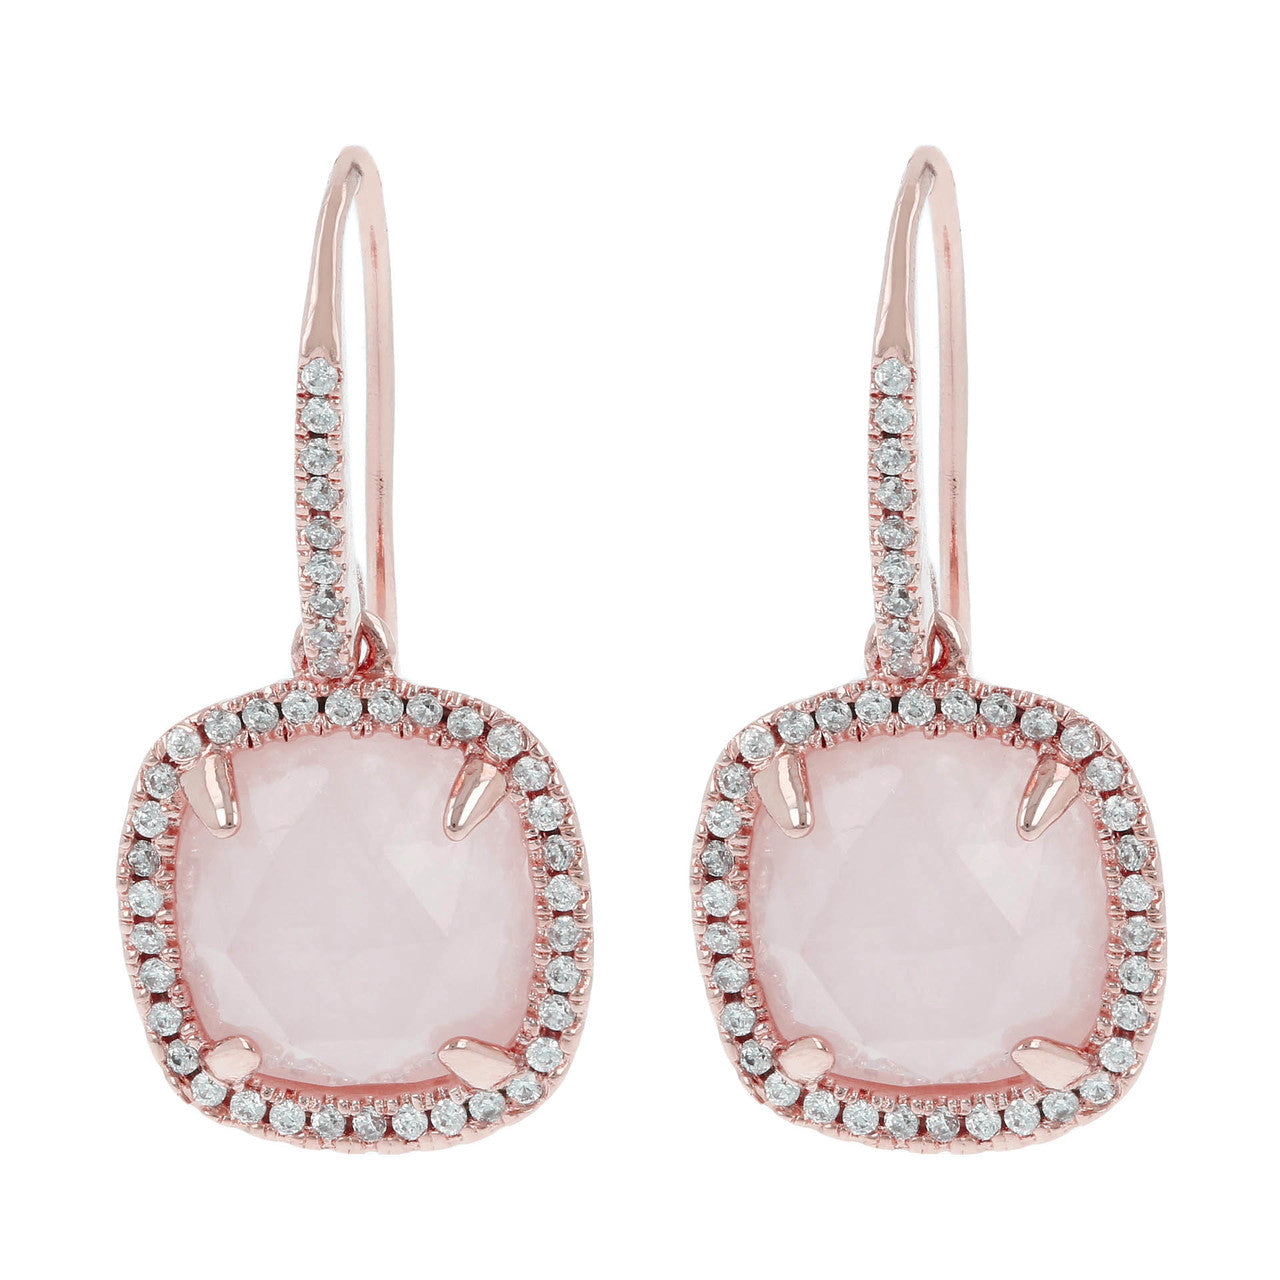 Cubic zirconia stud earrings ROSE QUARTZ